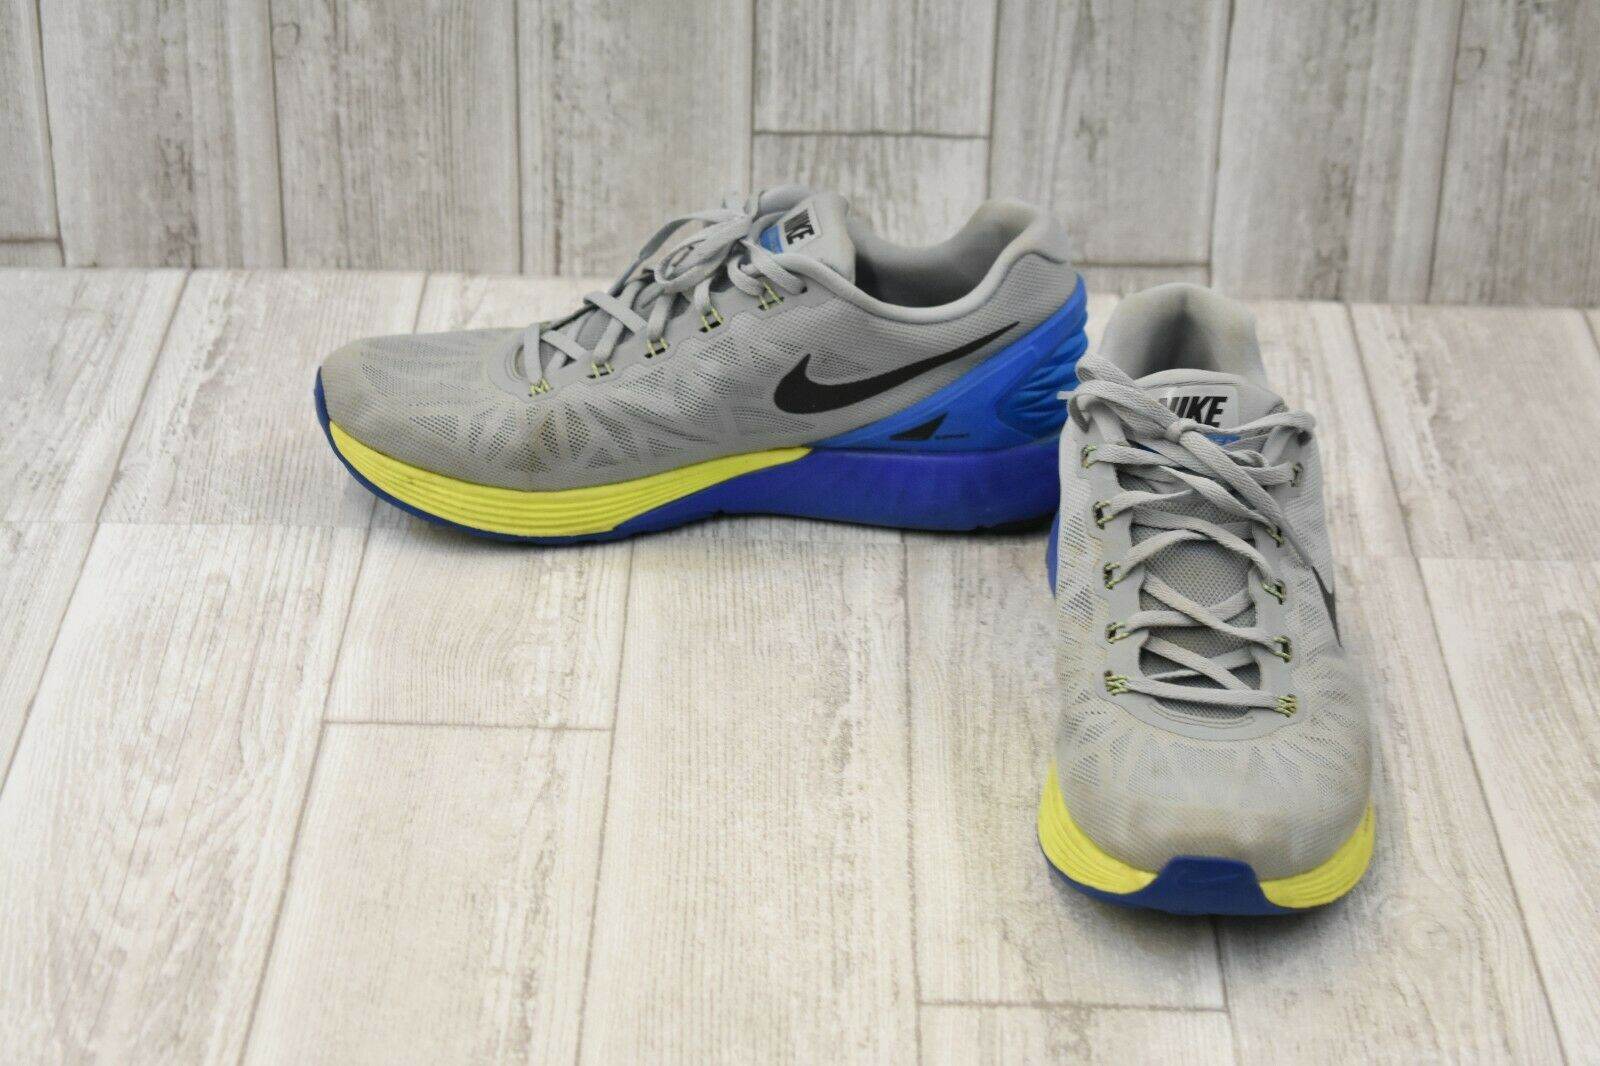 Nike LunarGlide 6 Running shoes, Men's Size 12, Charcoal bluee Yellow